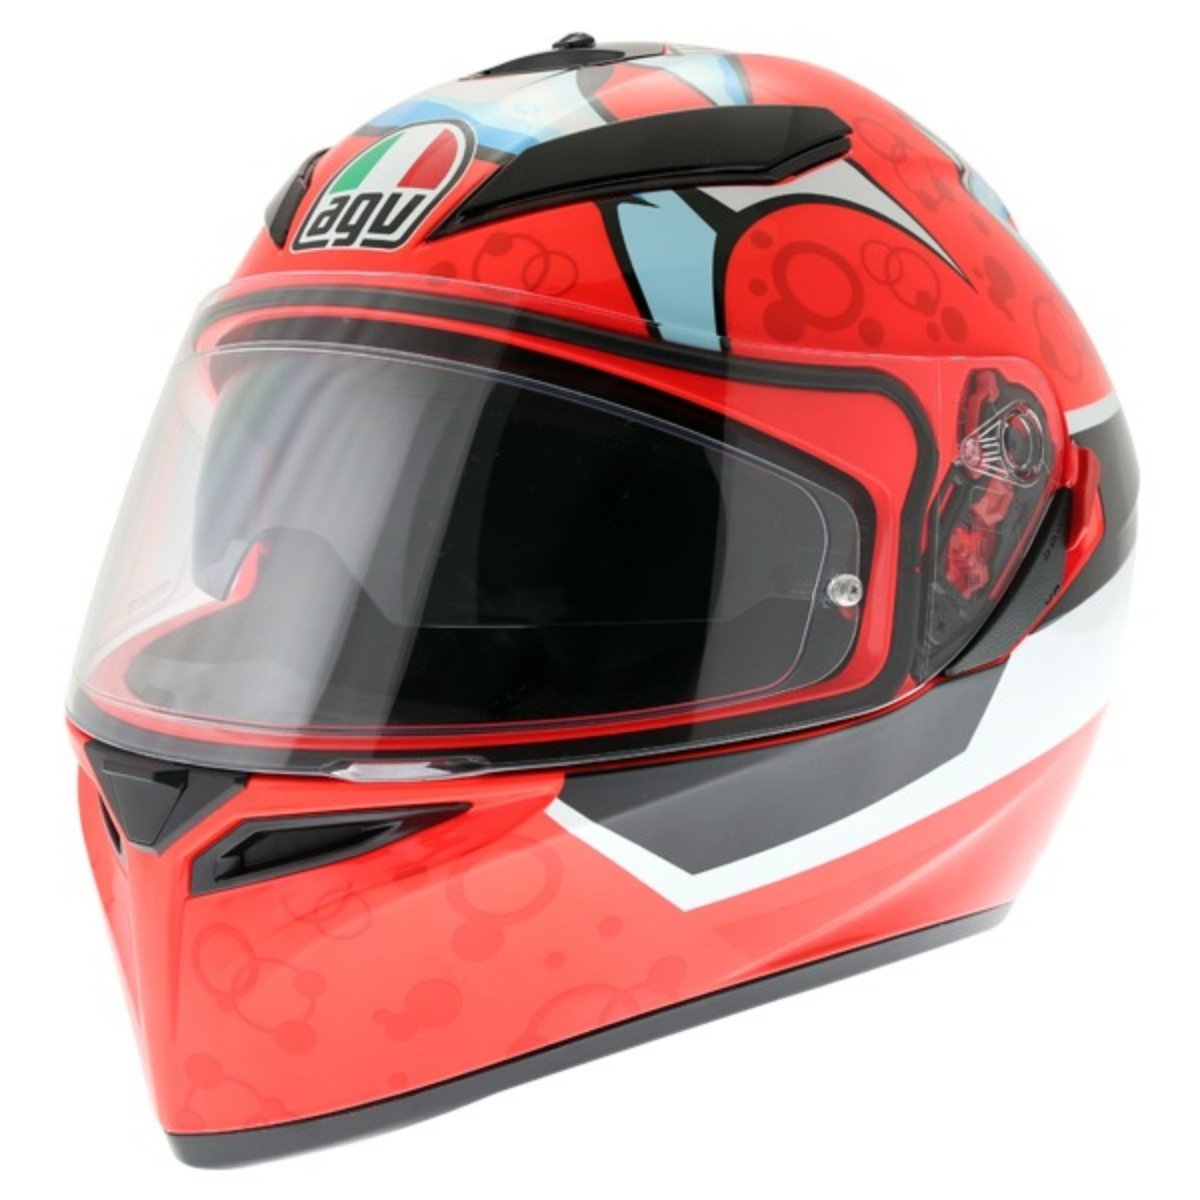 AGV K3 SV Full Face Motorcycle Helmet with Attack Graphic